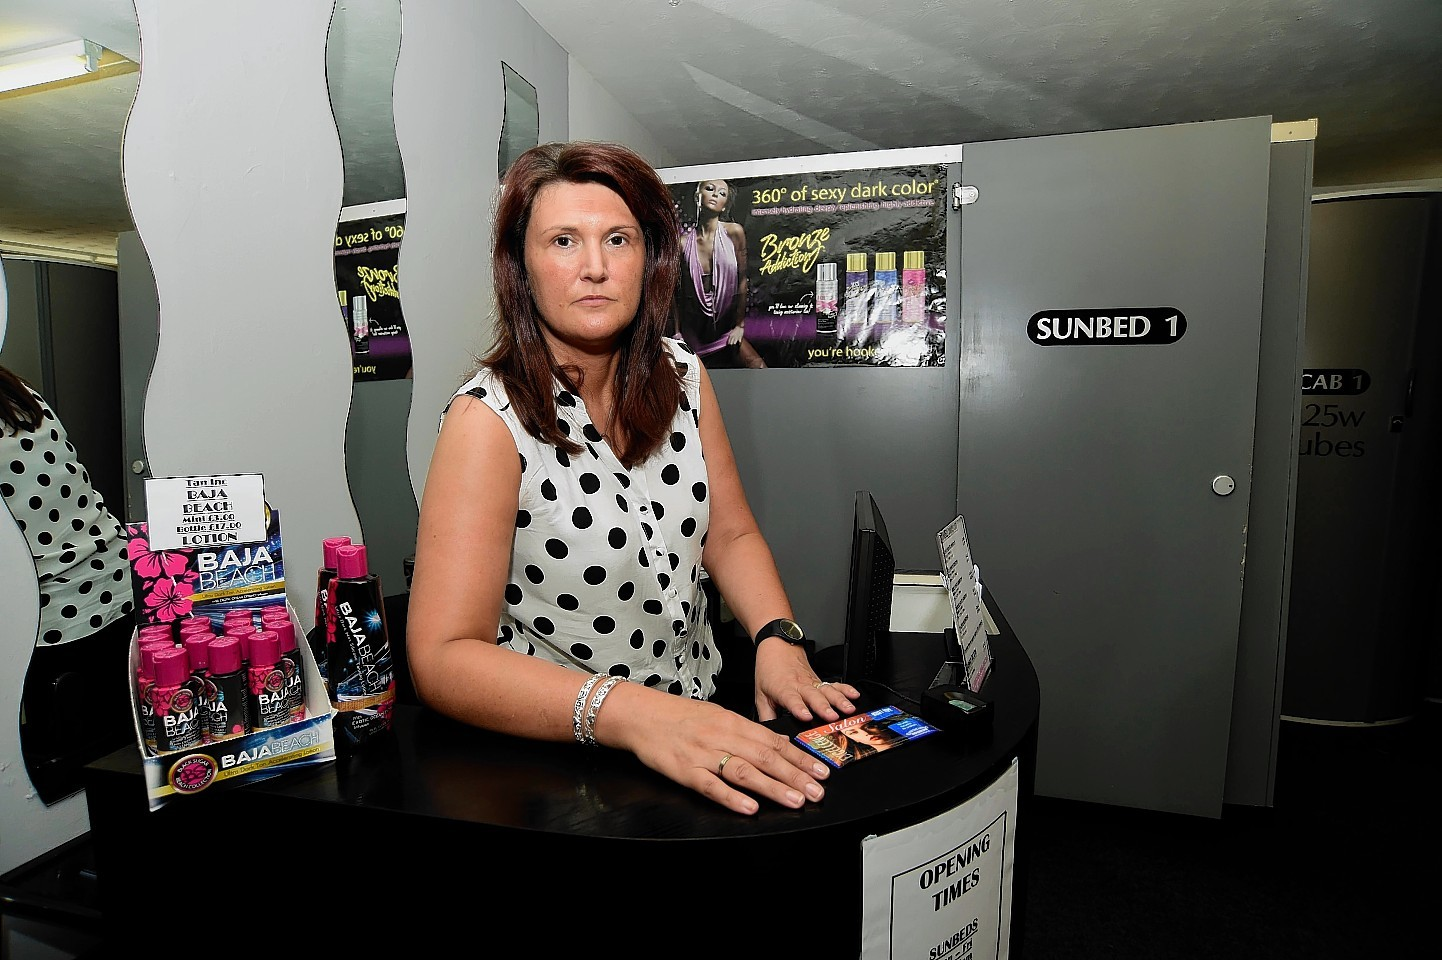 Brenda Clark, of the The Tanning, Hair and Beauty Company in Banff where a phone was stolen.